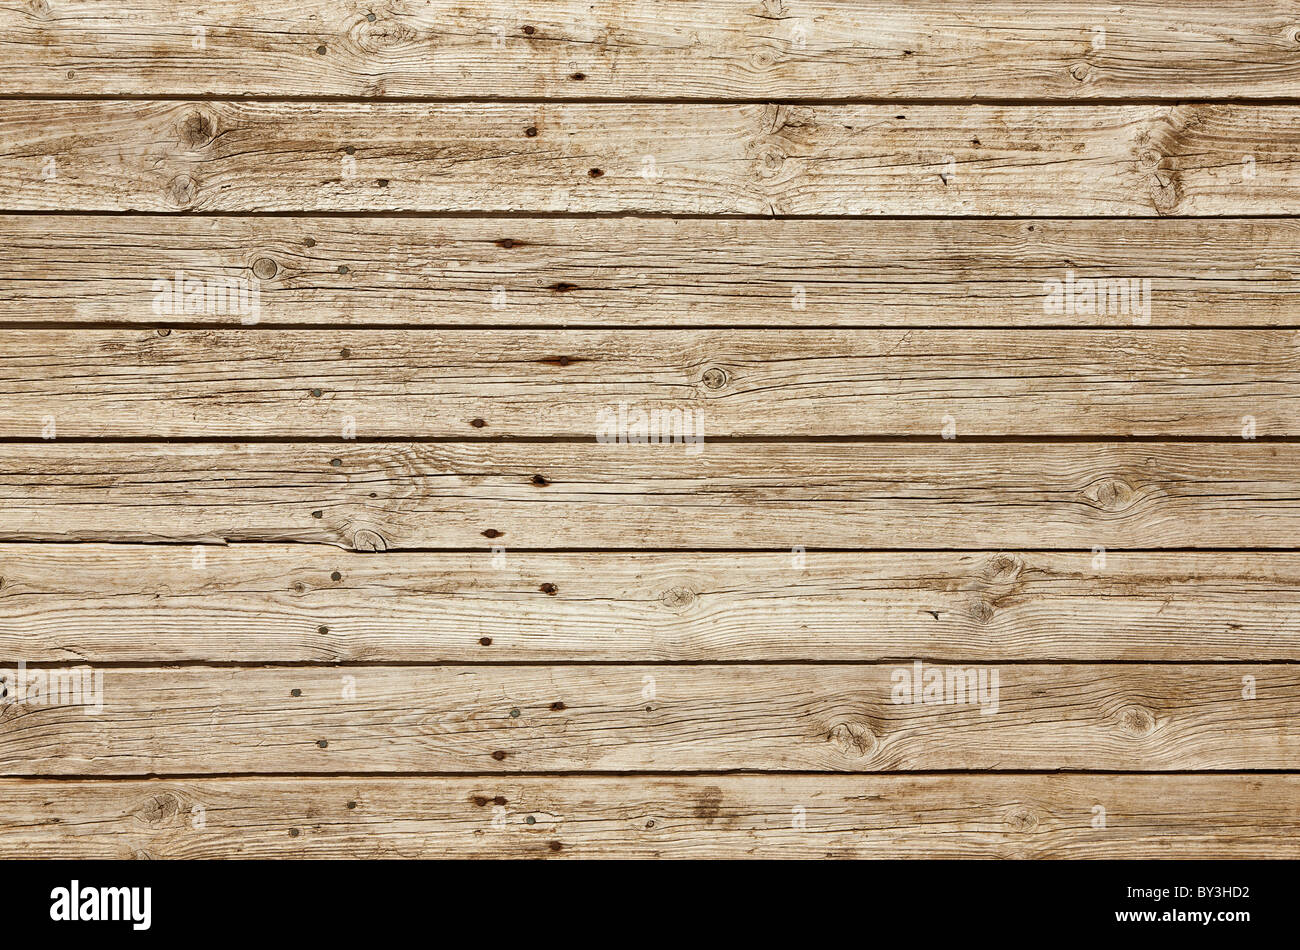 Wooden background with perfectly even light - Stock Image